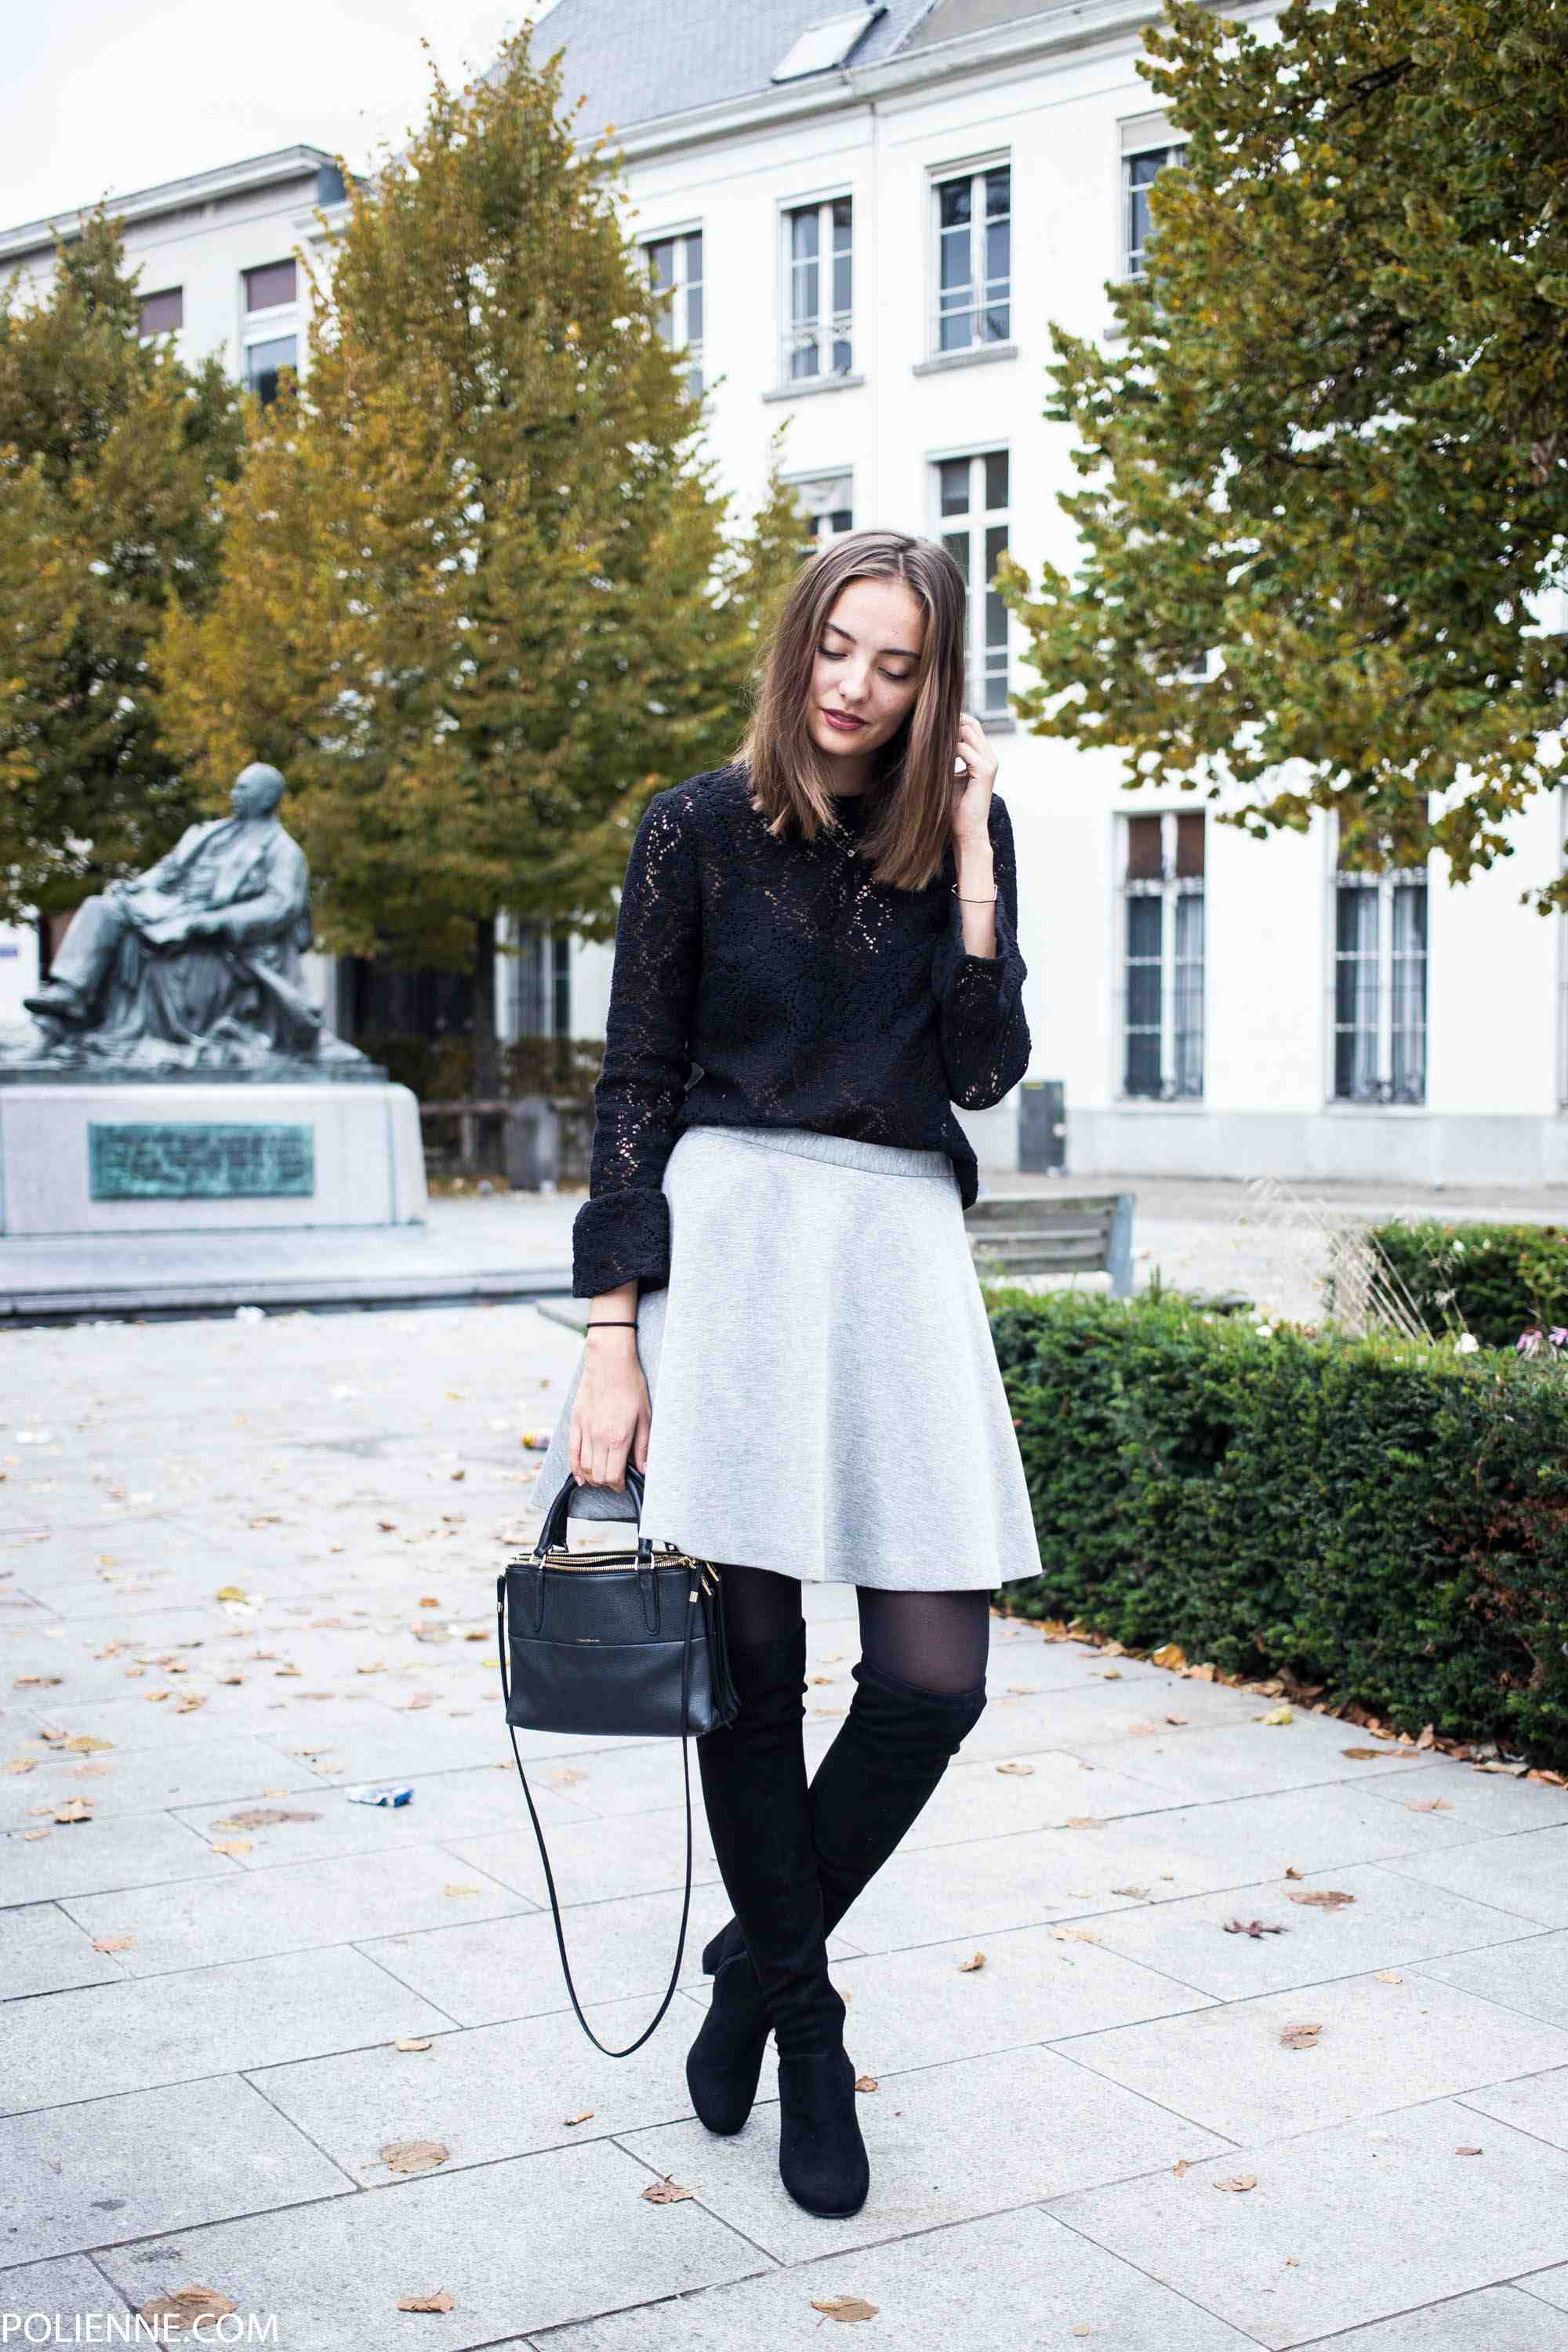 Quoi porter ce weekend ? 4 looks superbes à adopter